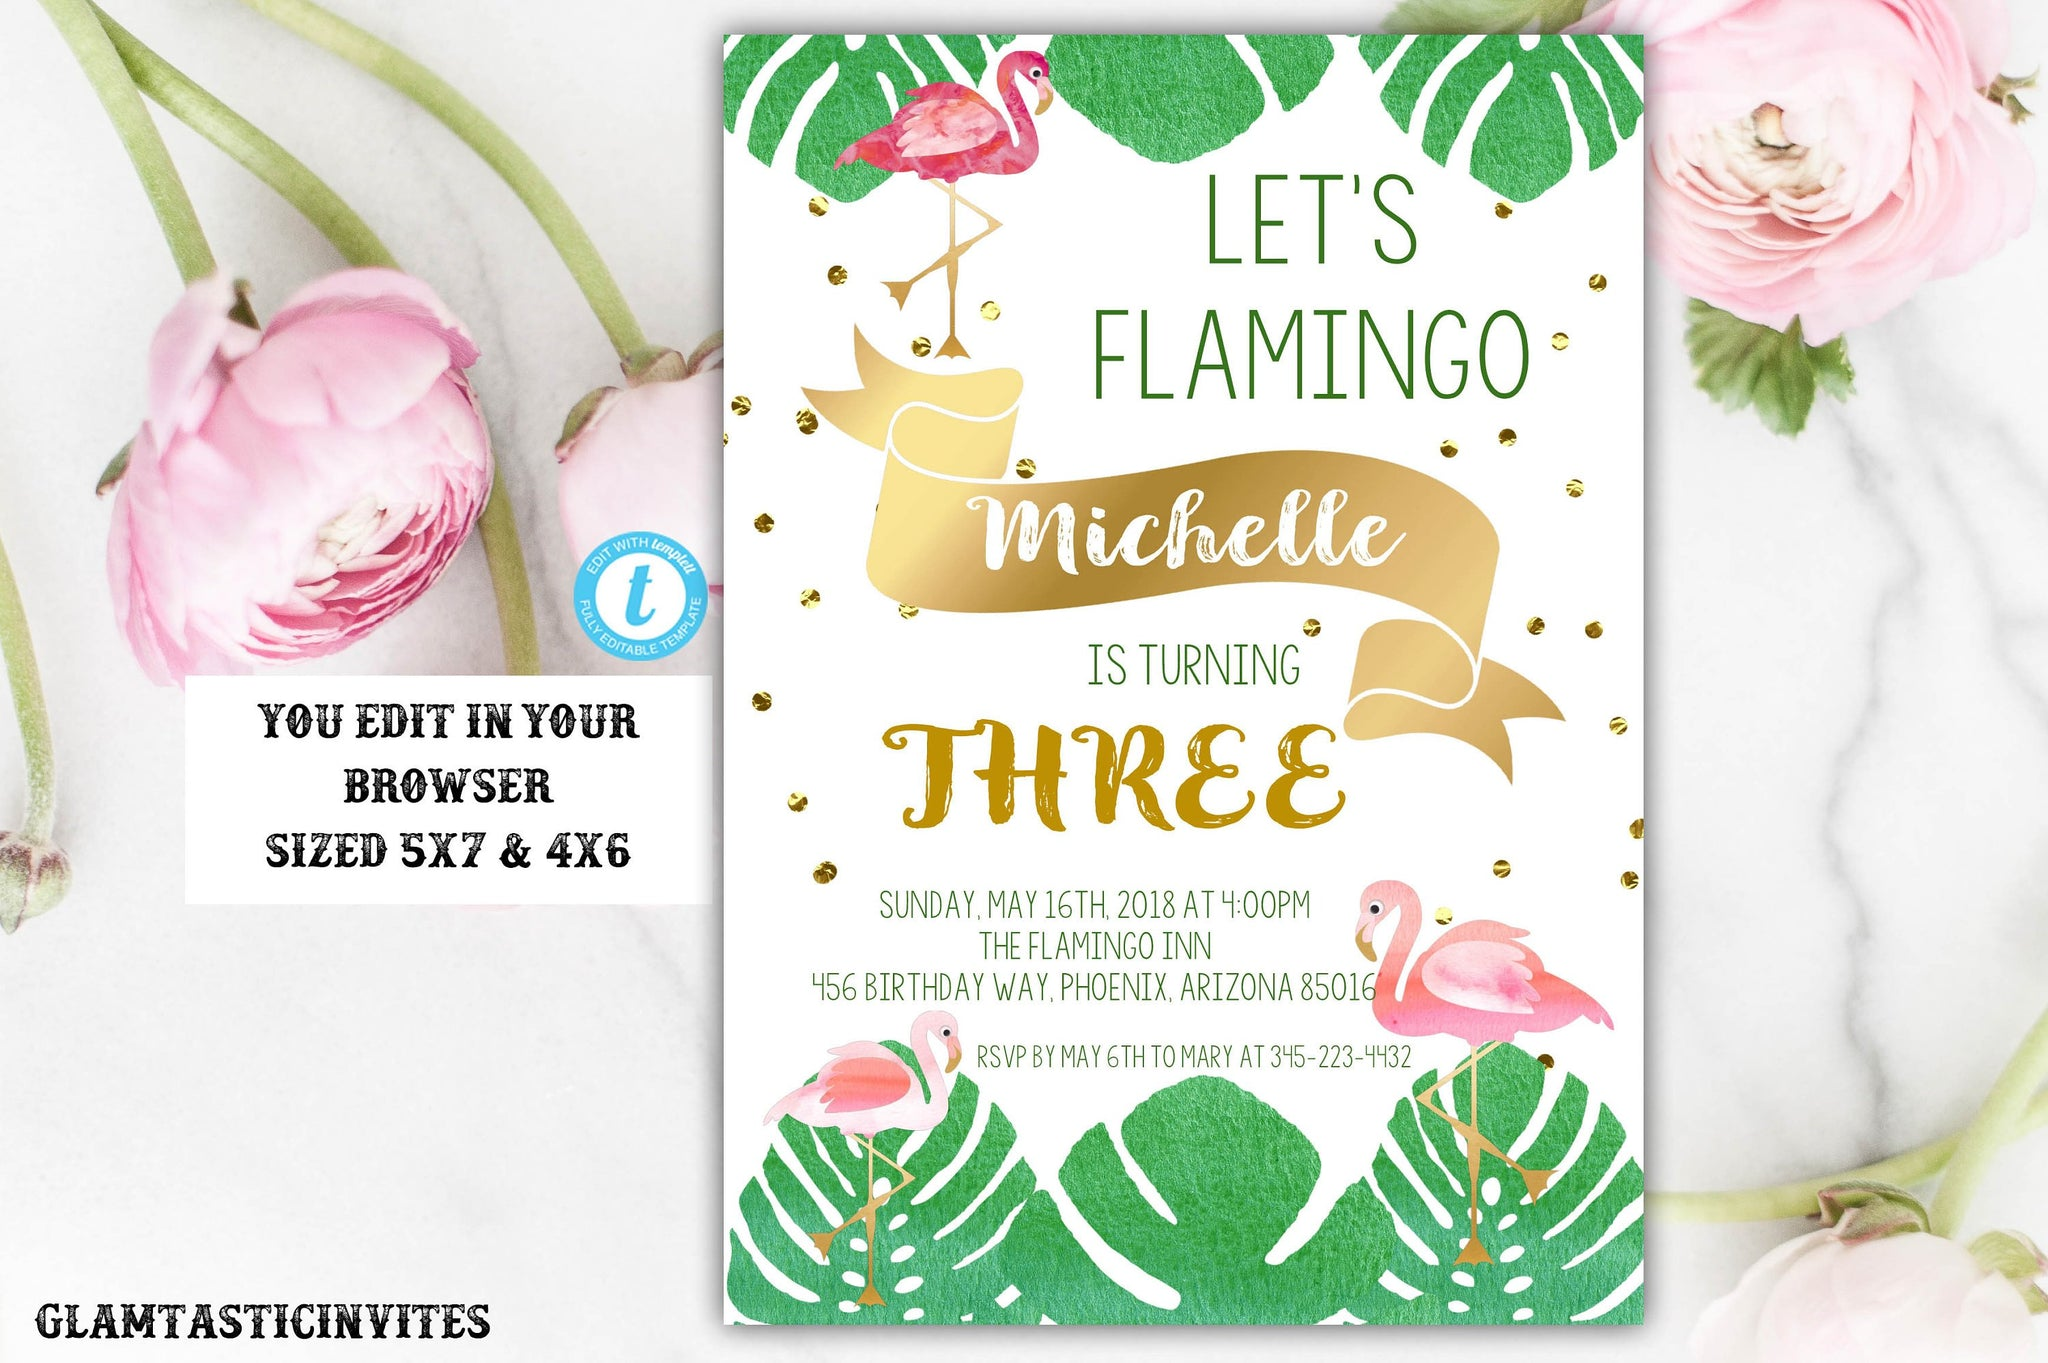 Flamingo Birthday Invitation Template, Instant Download, Editable, Printable, Flamingo, Flamingo Template, Summer Birthday Invitation, DIY